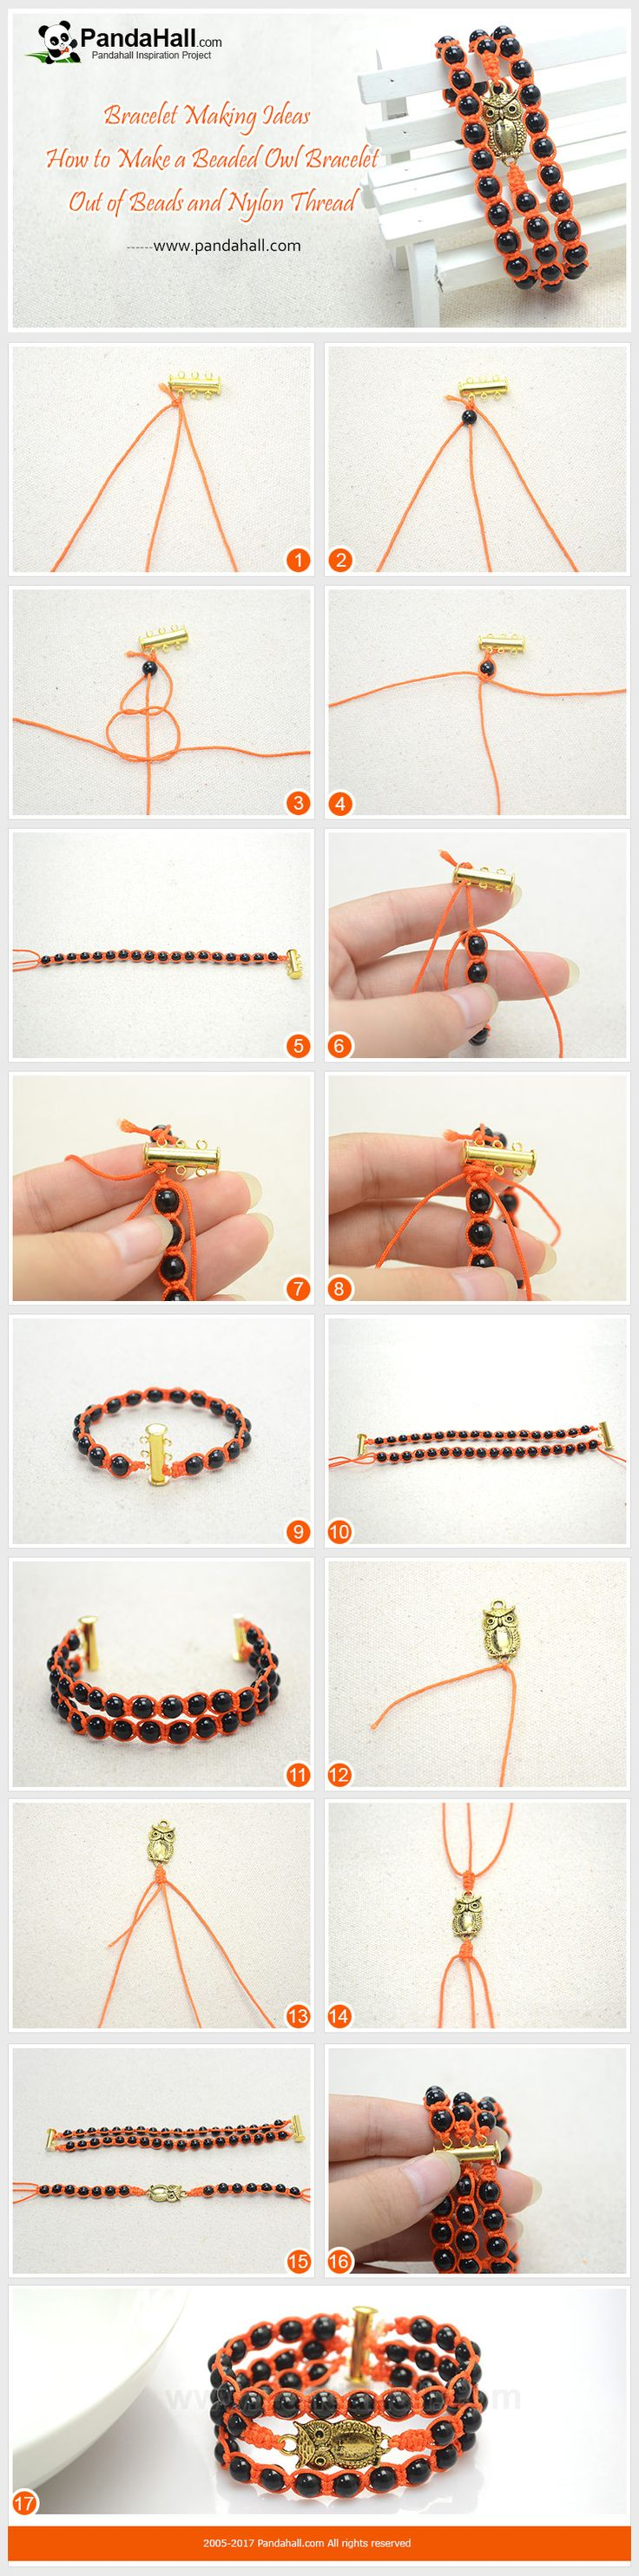 How to Make Beaded Owl Bracelet The symbolic owl and pumpkin red threads make the craft one of the best beaded bracelets for this Halloween ! Just check out and learn how to make the beaded bracelet with strings! #diy #tutorial #craft #bracelet #pandahall #pandahalldiy #owl #Halloween #braid